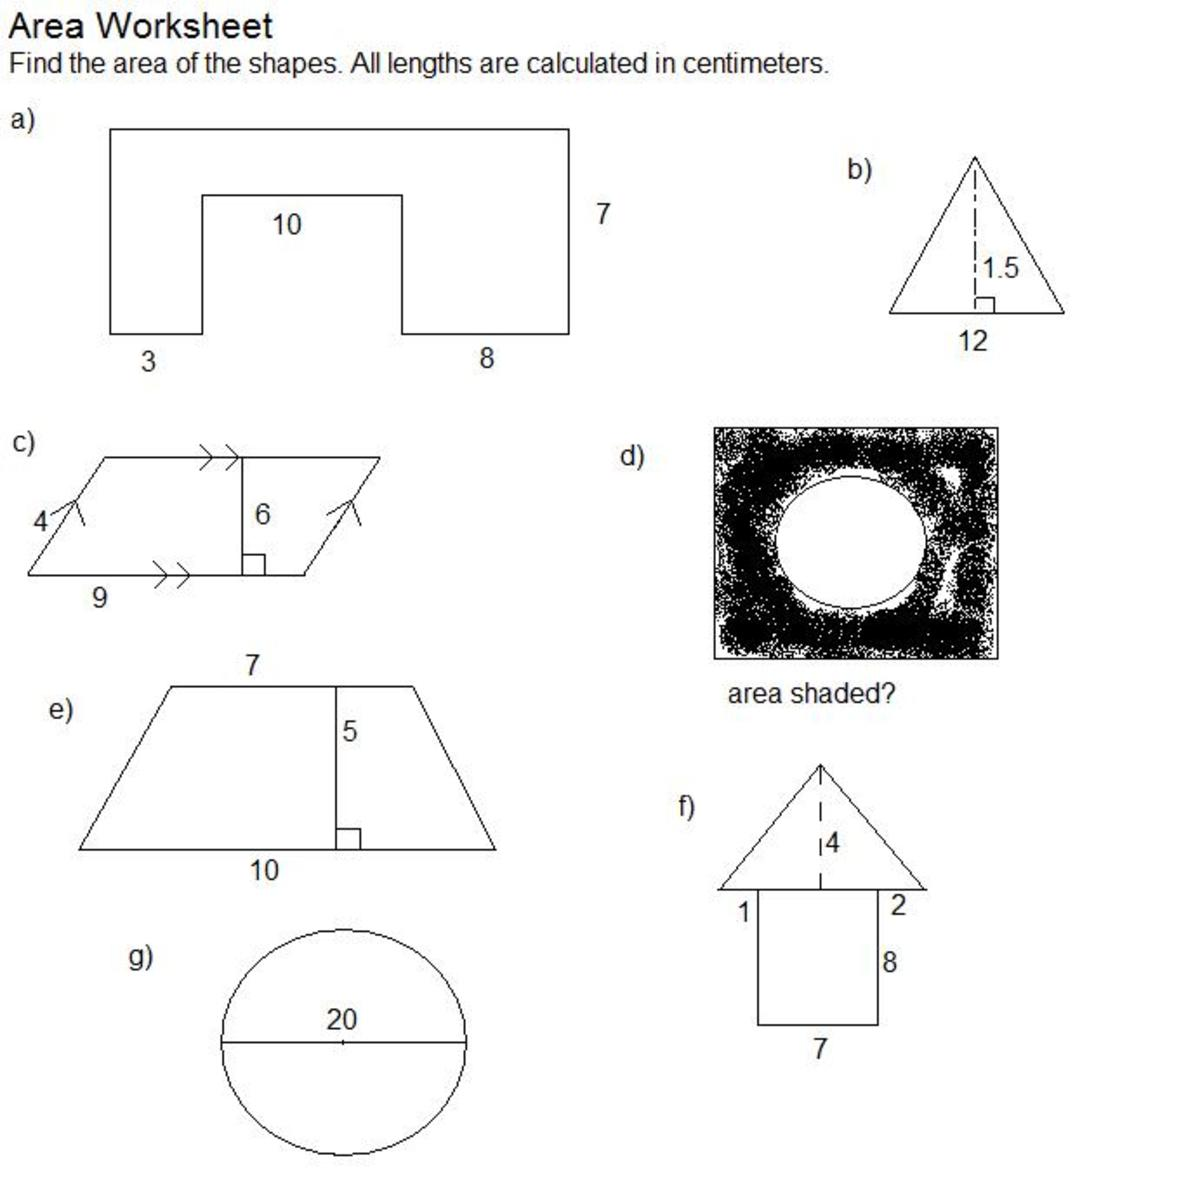 hpw to find the area of shapes 2